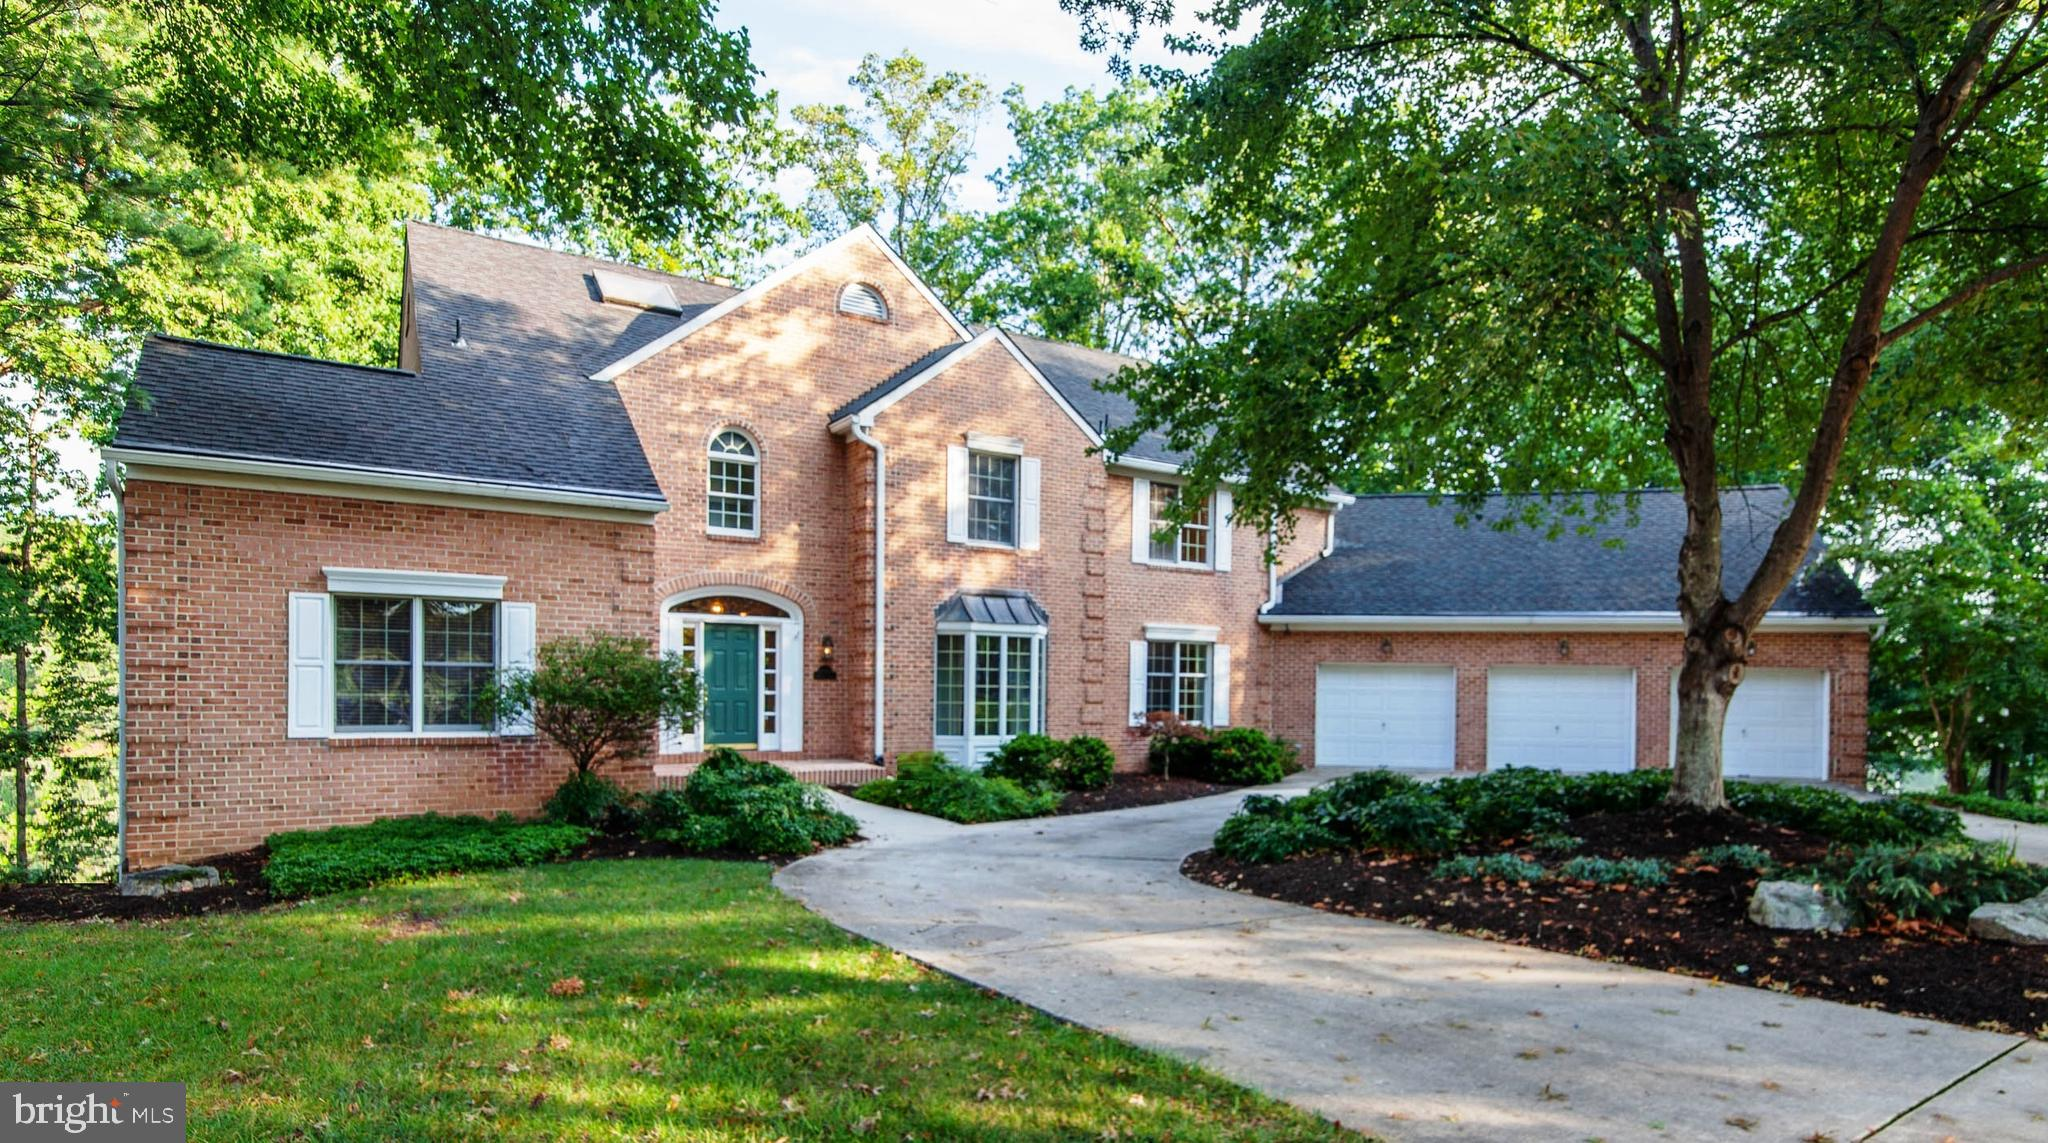 12500 MONTEREY CIRCLE, FORT WASHINGTON, MD 20744